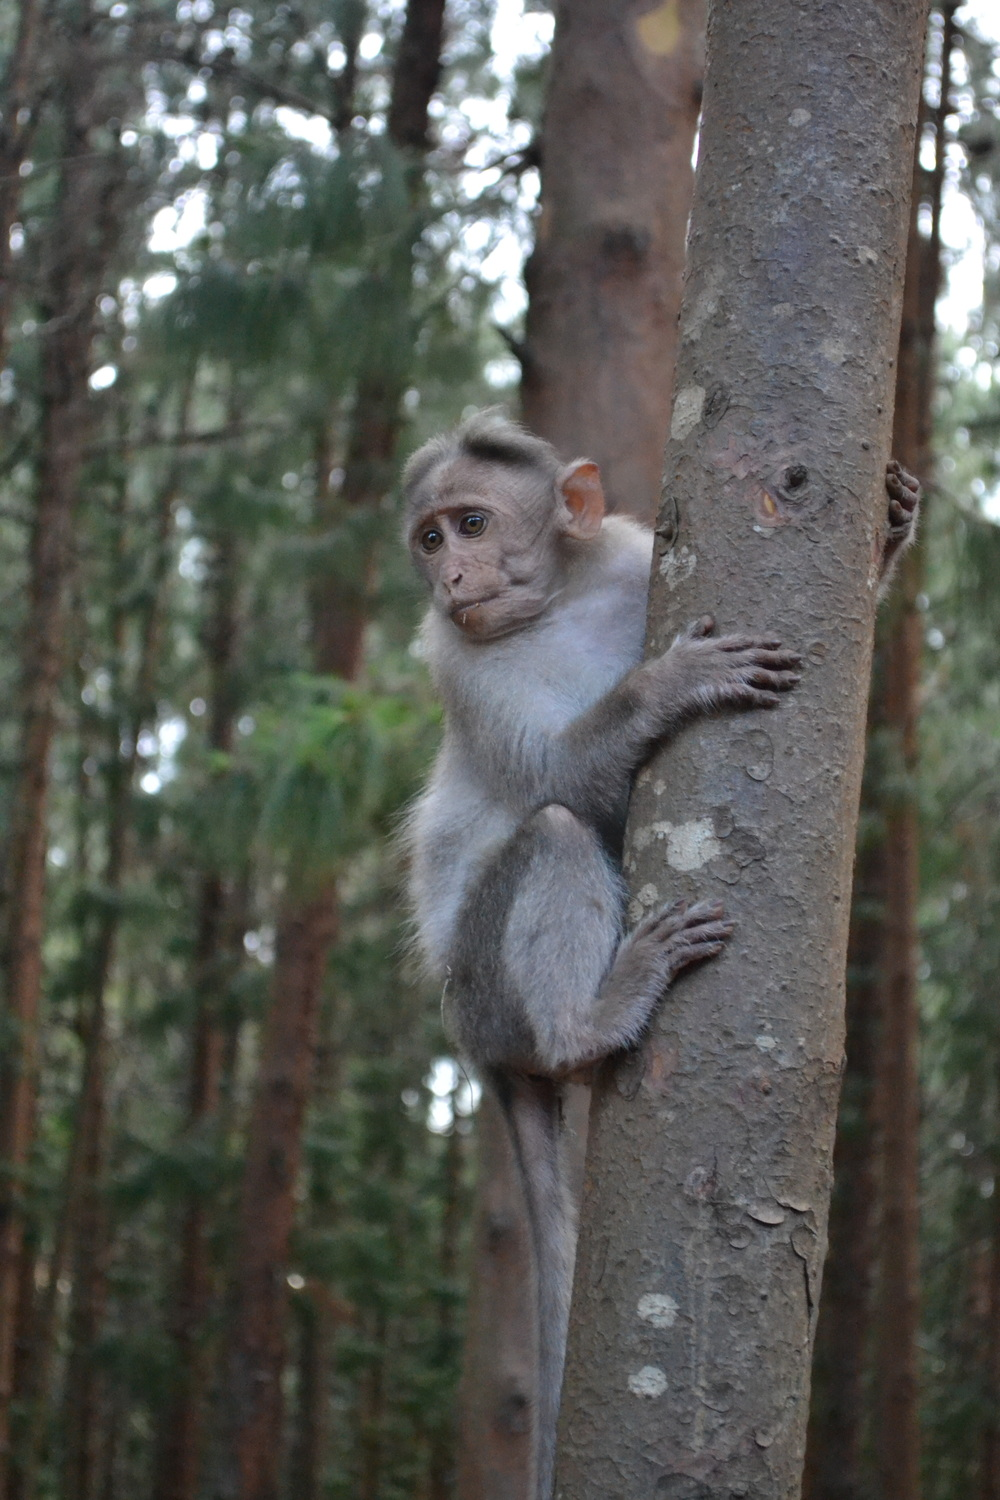 Another surprising fact about Kodaikanal - there are monkeys everywhere!